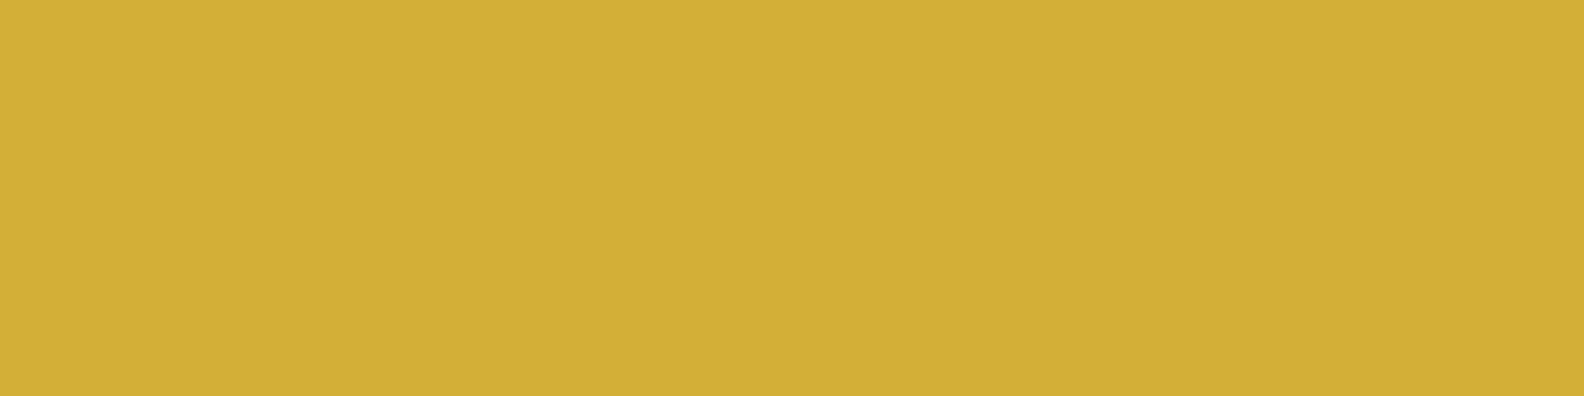 1584x396 Gold Metallic Solid Color Background